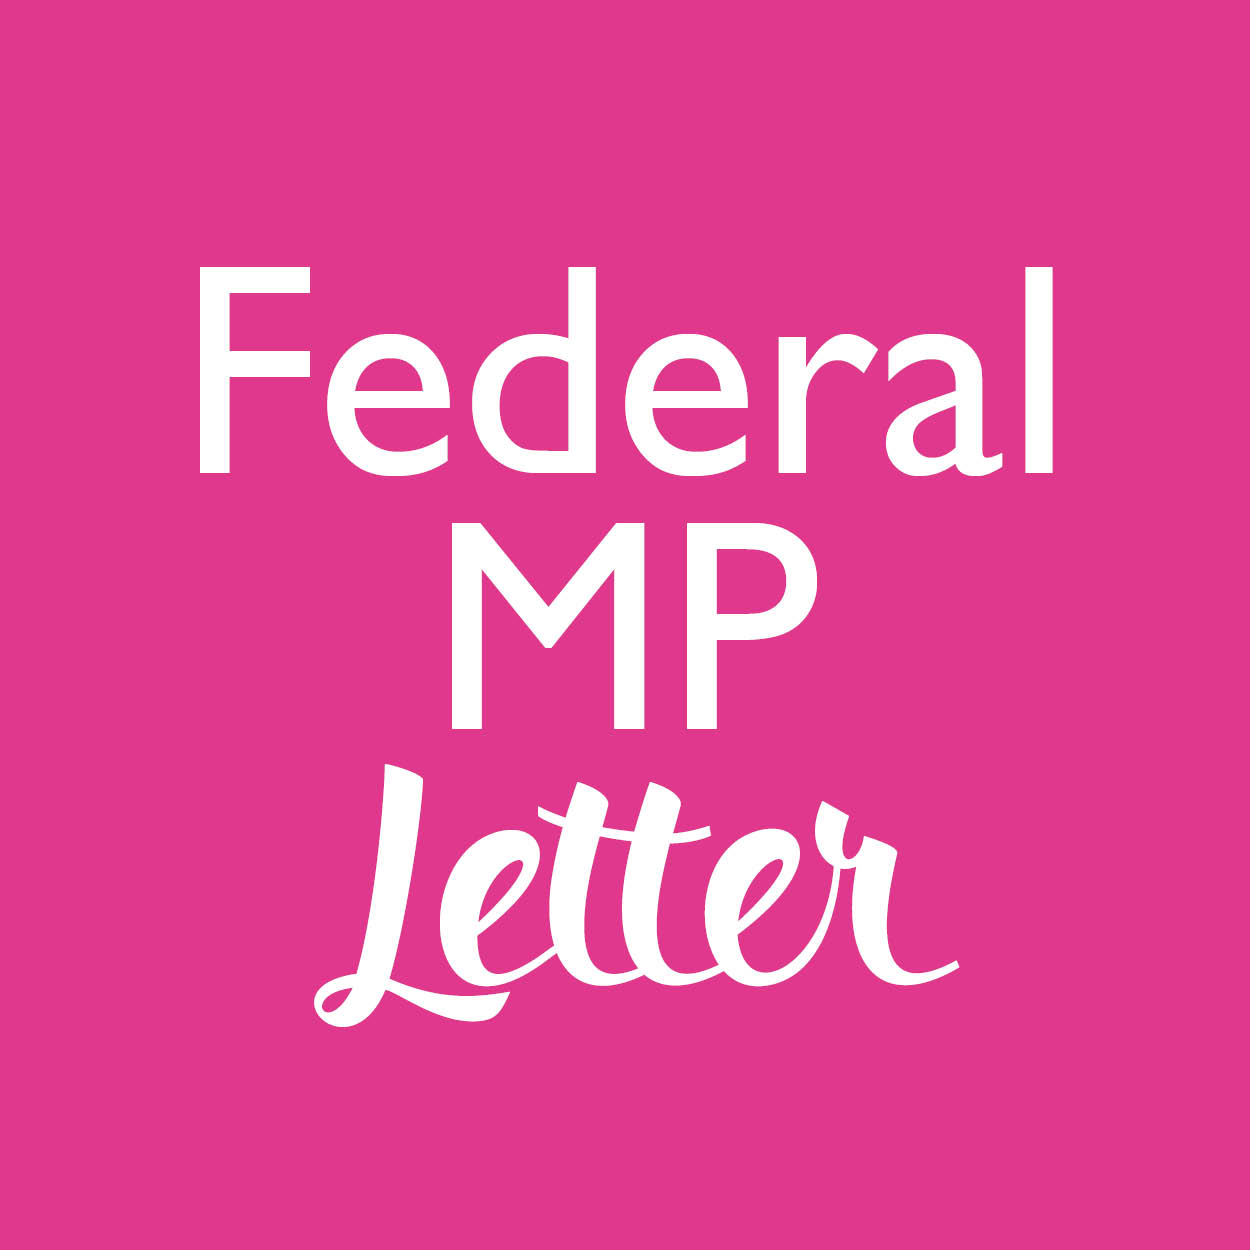 Template letter - federal MPs 2021